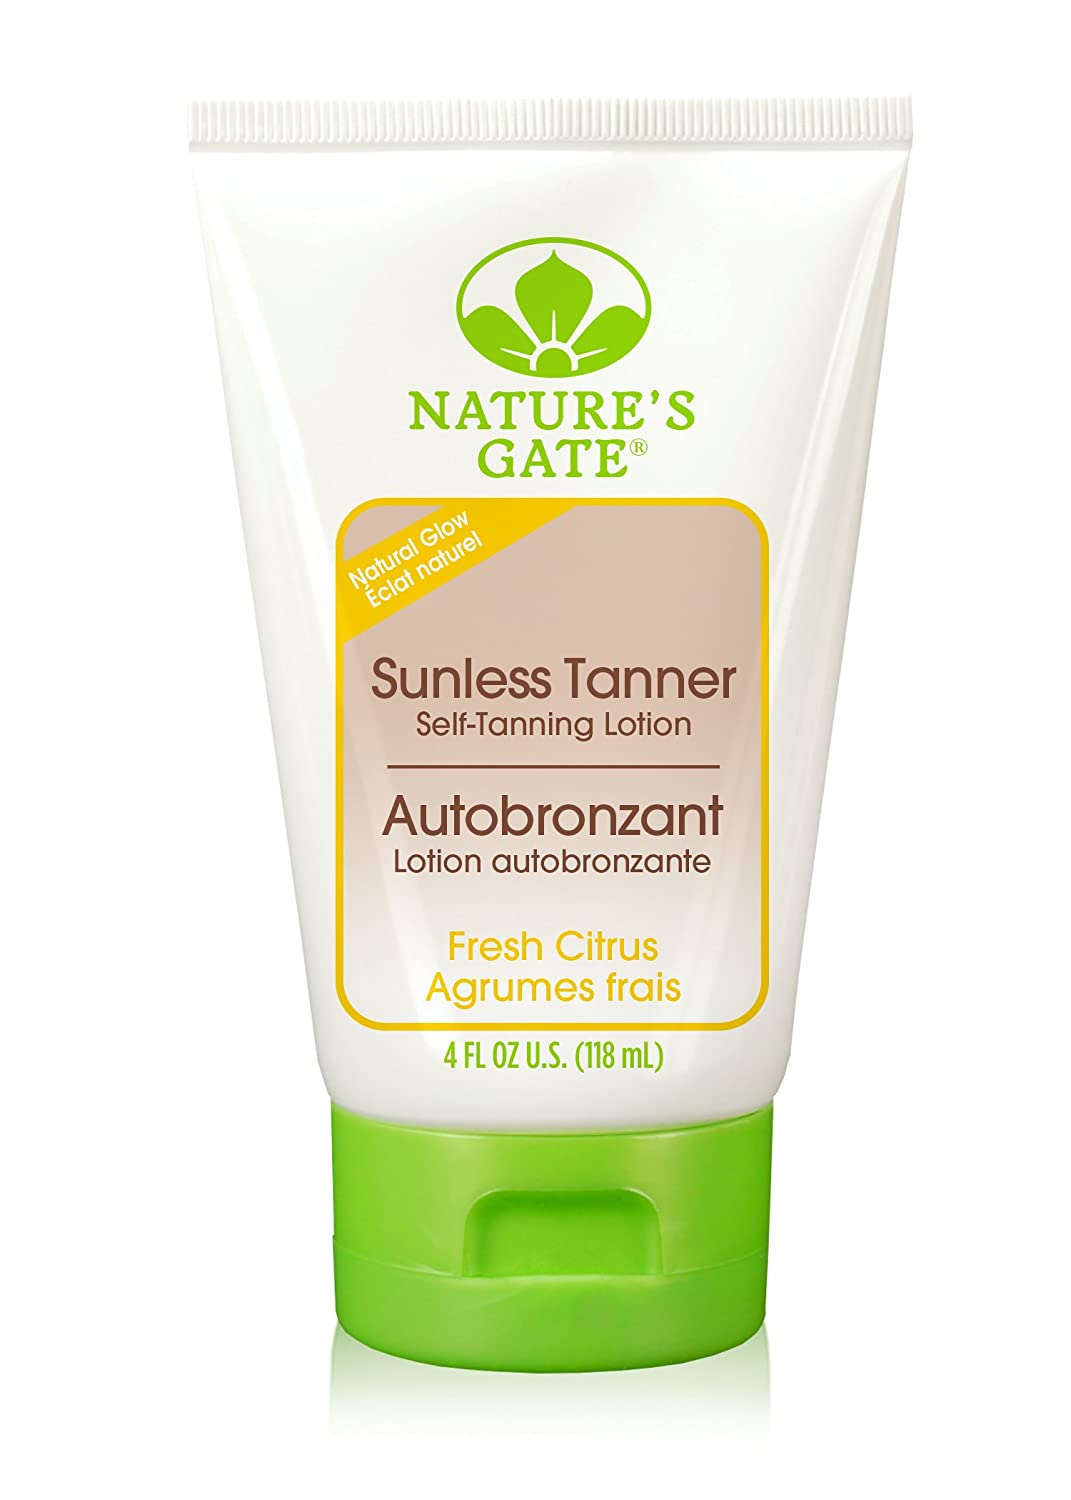 Nature's Gate Sunless Tanner - 4 fl oz Nature' s Gate 47100116